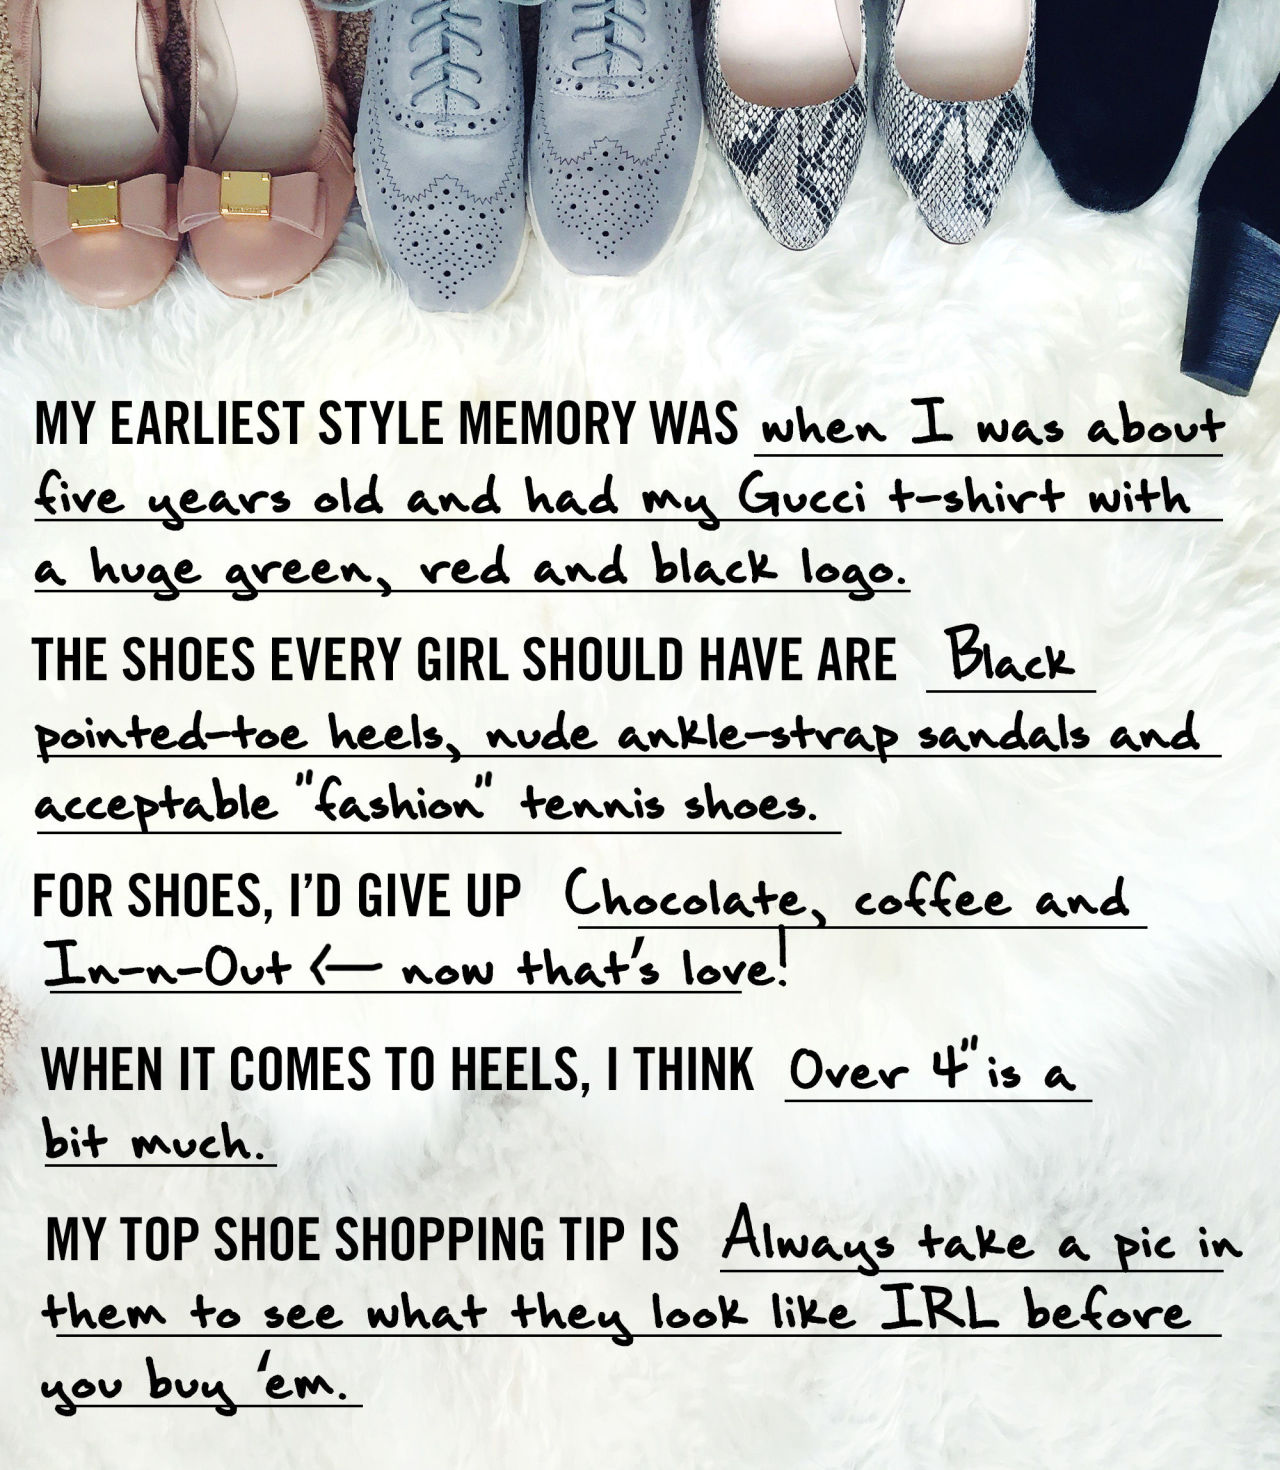 marie claire, pursuit of shoes, shoe shopping tip